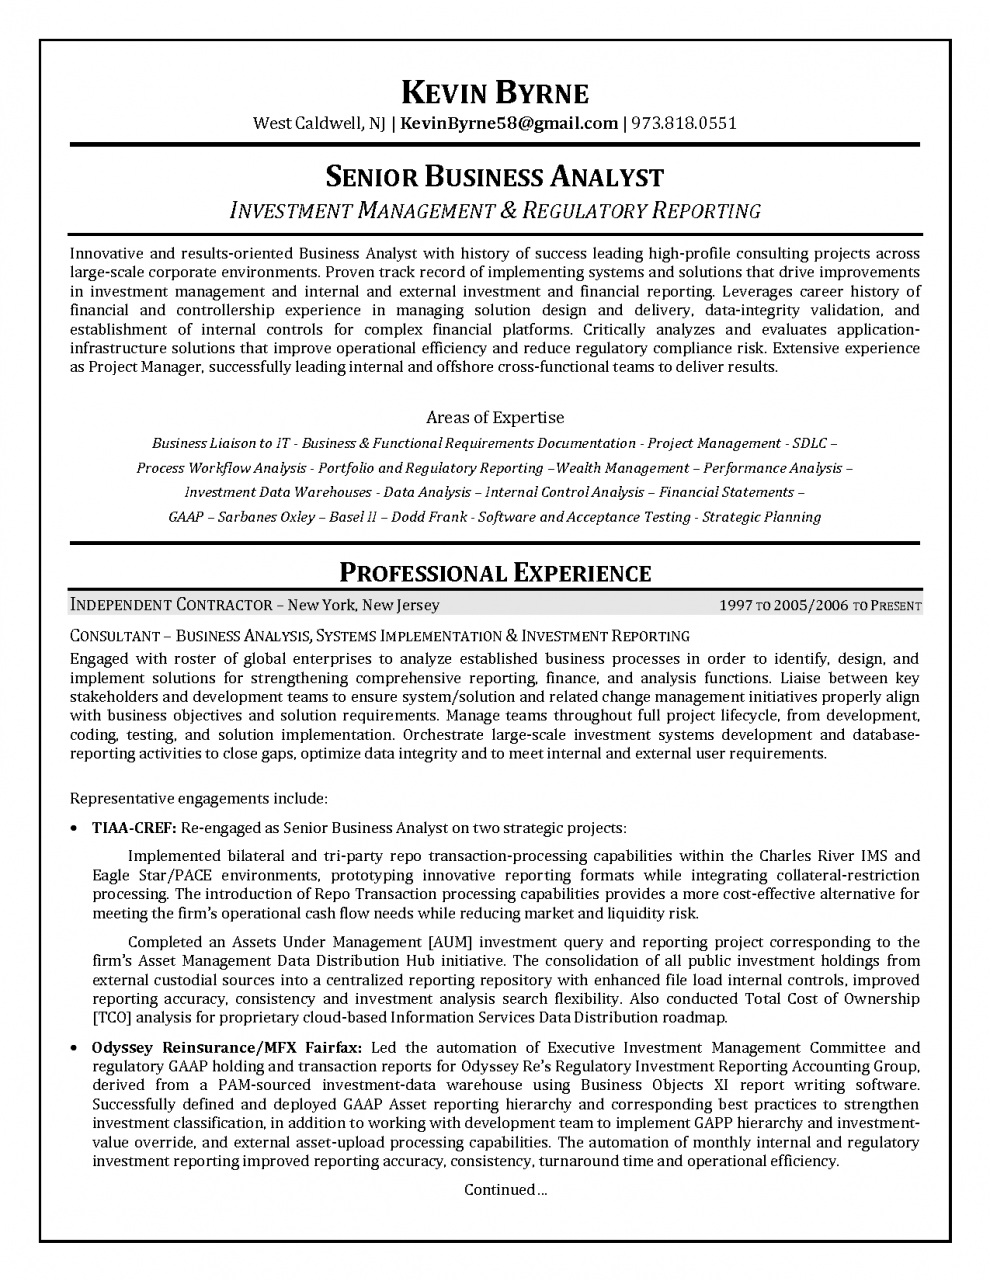 Business Analyst Resume Sample Amazing Resumesenior Business Analyst Resume Format Business Analyst